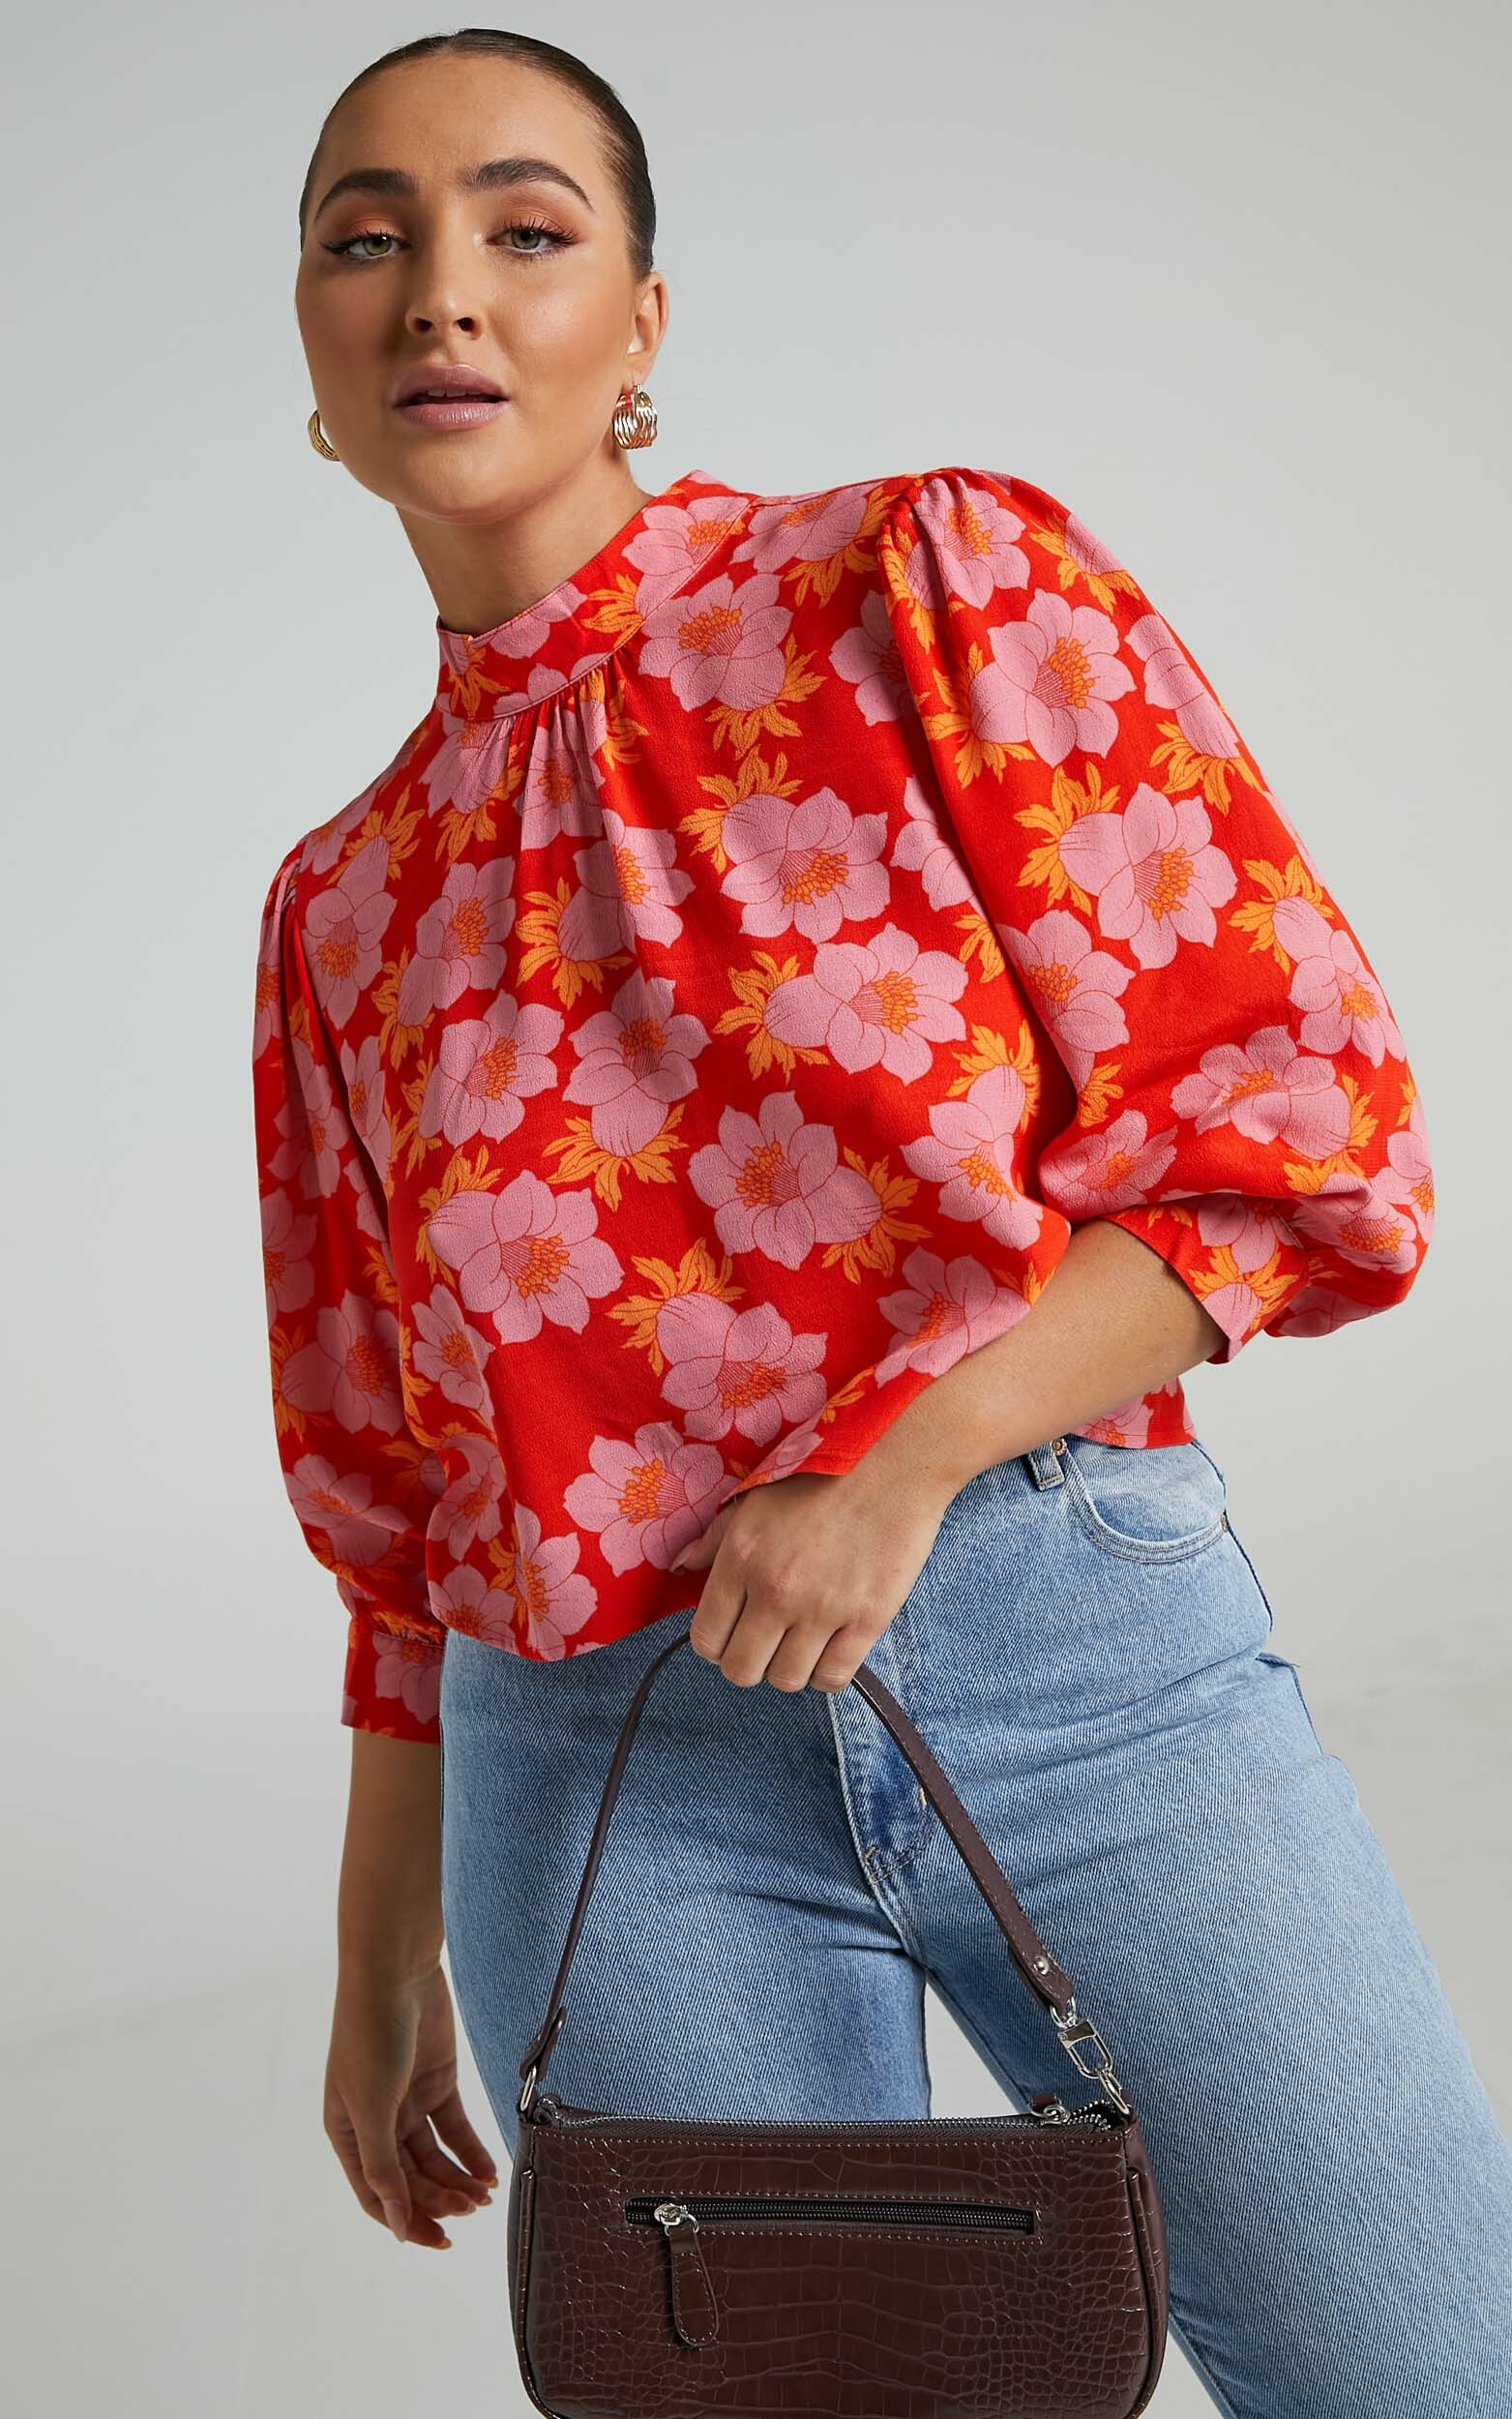 Rollas - Stephanie Datura Blouse in Pink Cordial - 06, PNK1, hi-res image number null